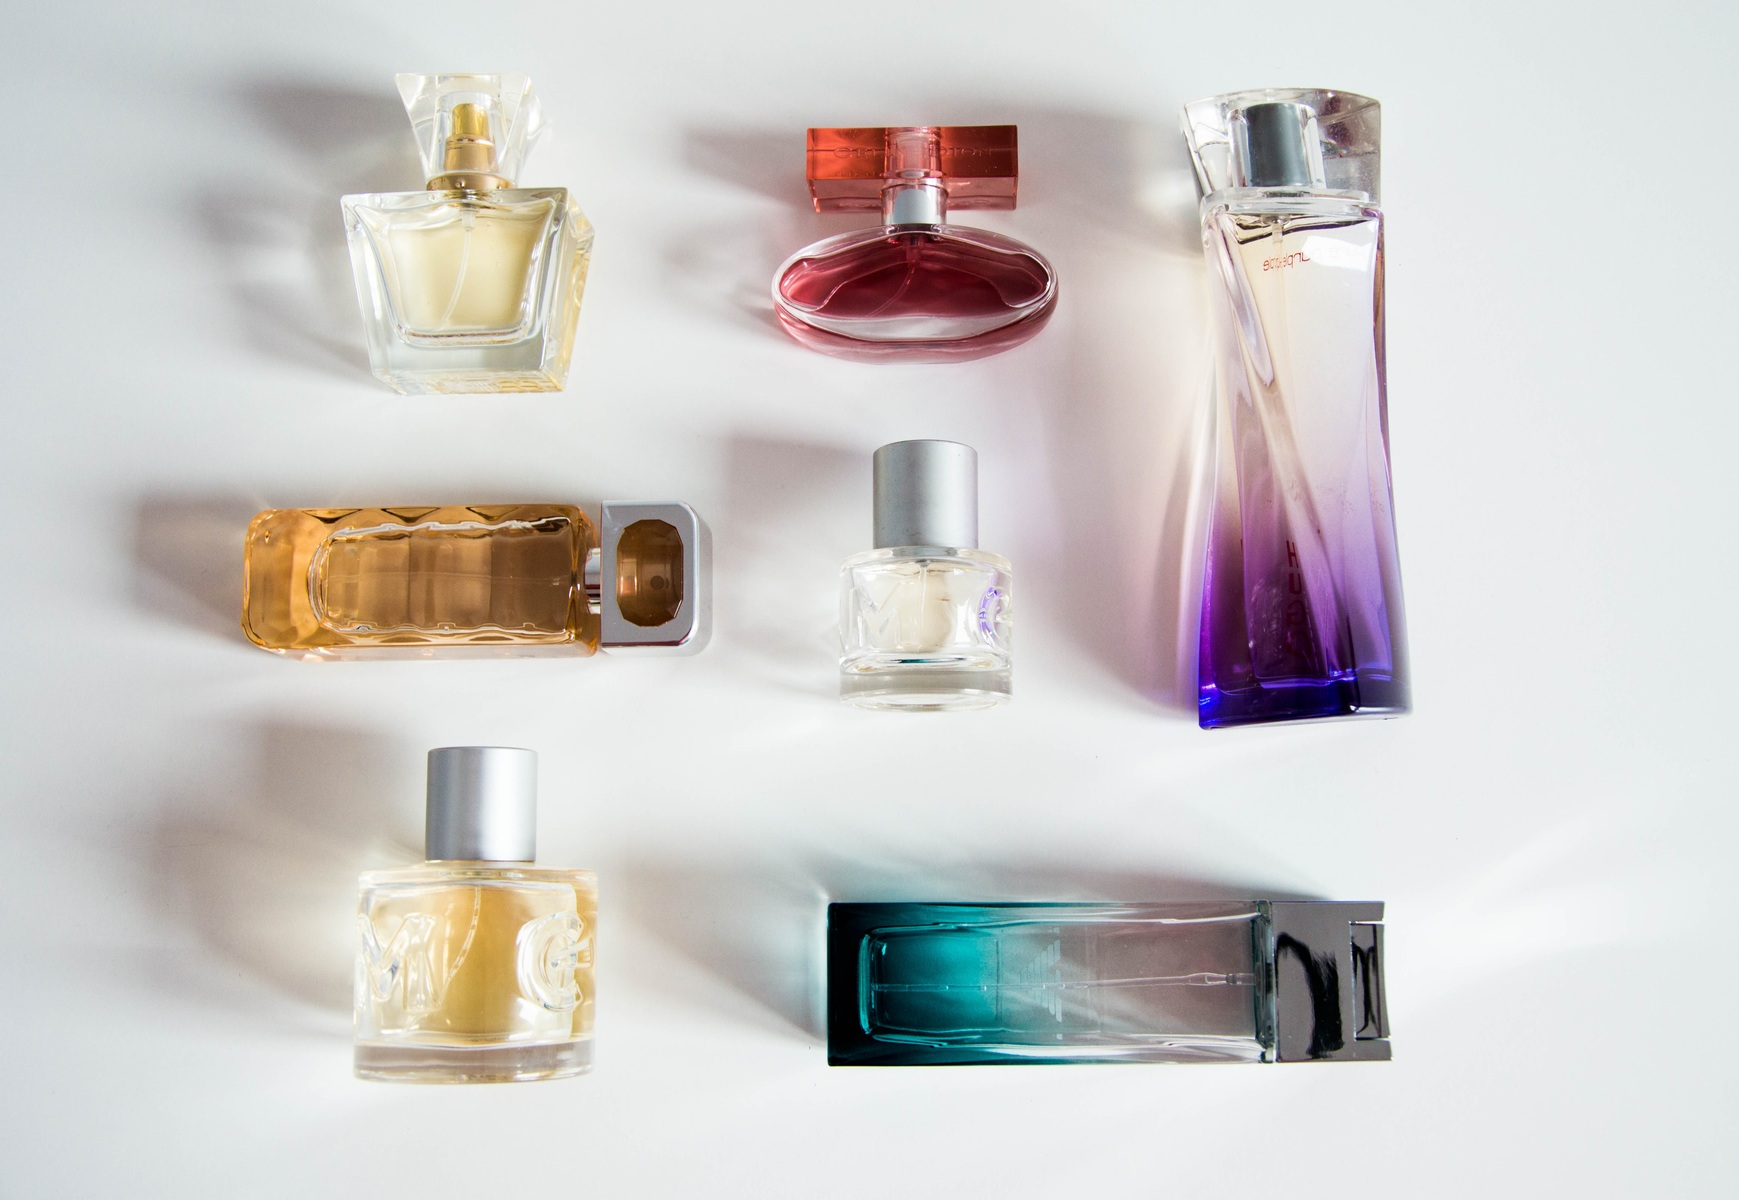 Top Shopping To Buy In Atlantic City-Perfumes